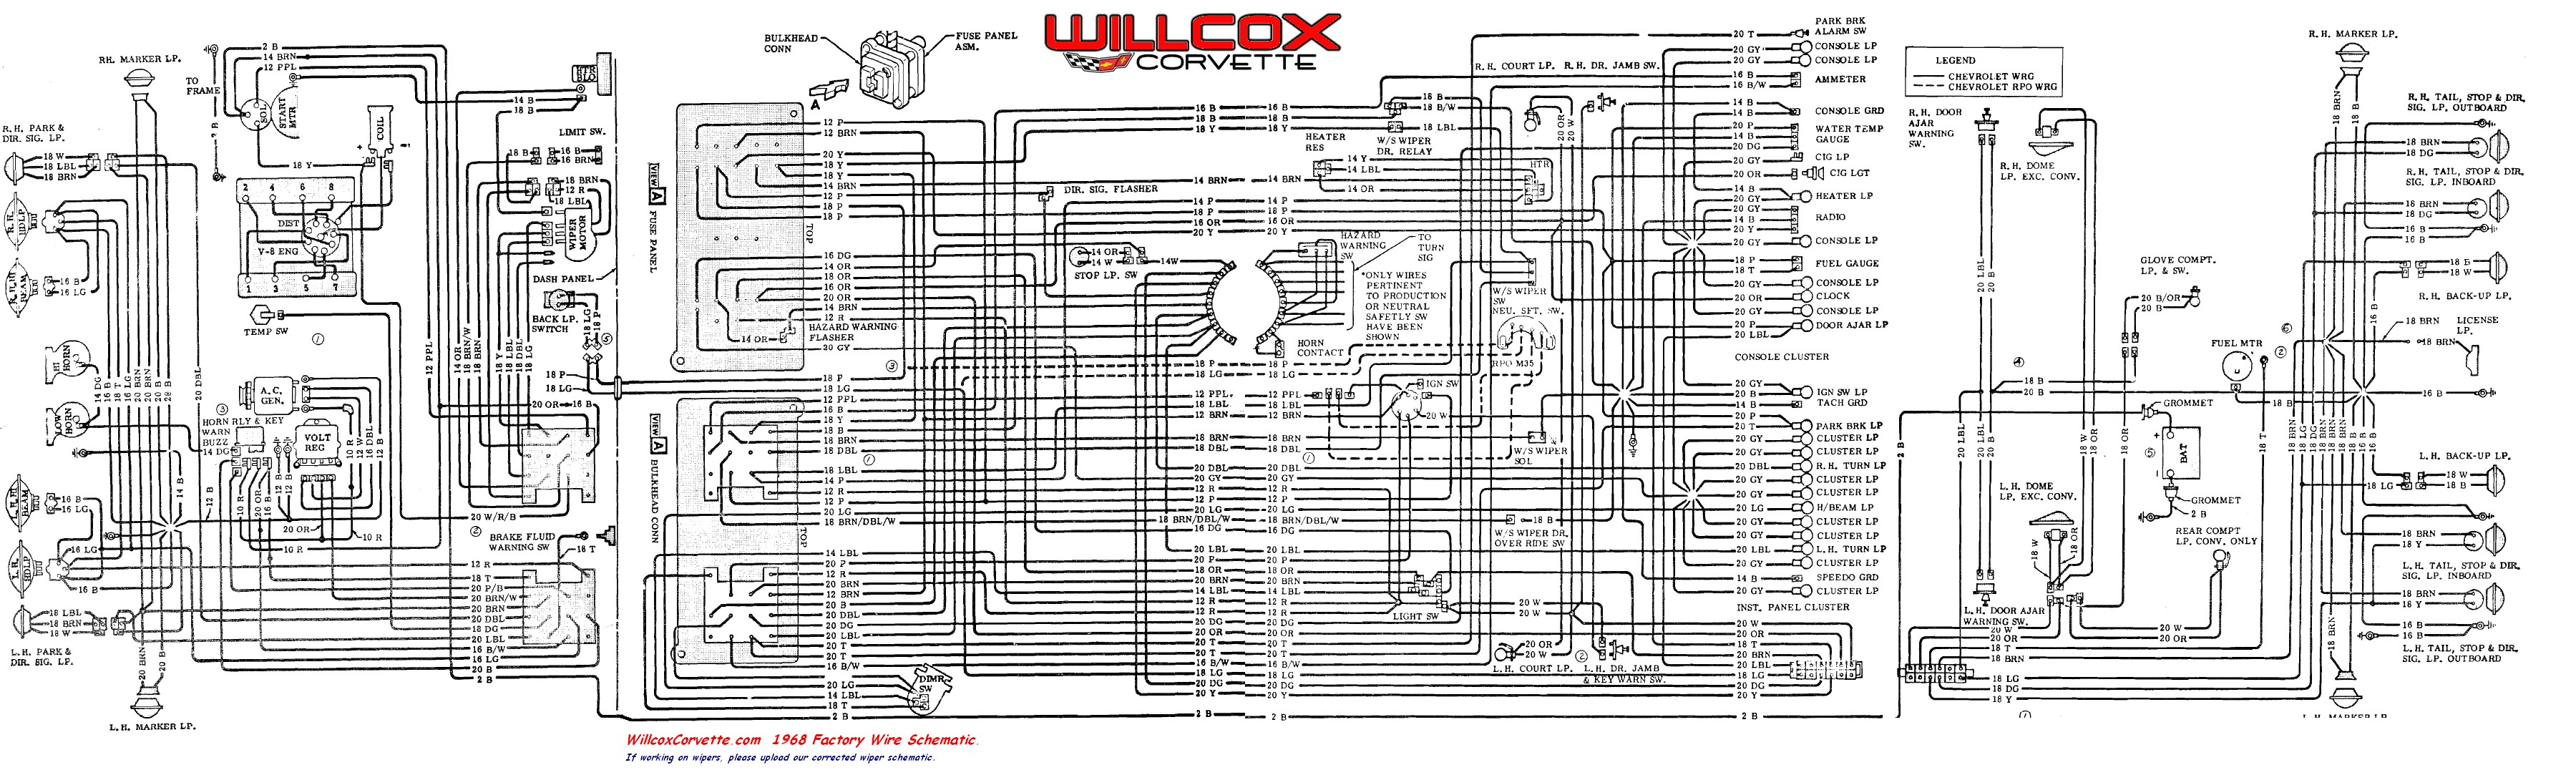 1979 Corvette Windshield Wiper Wiring Diagram Opinions About 1968 Trusted Rh Dafpods Co Motor